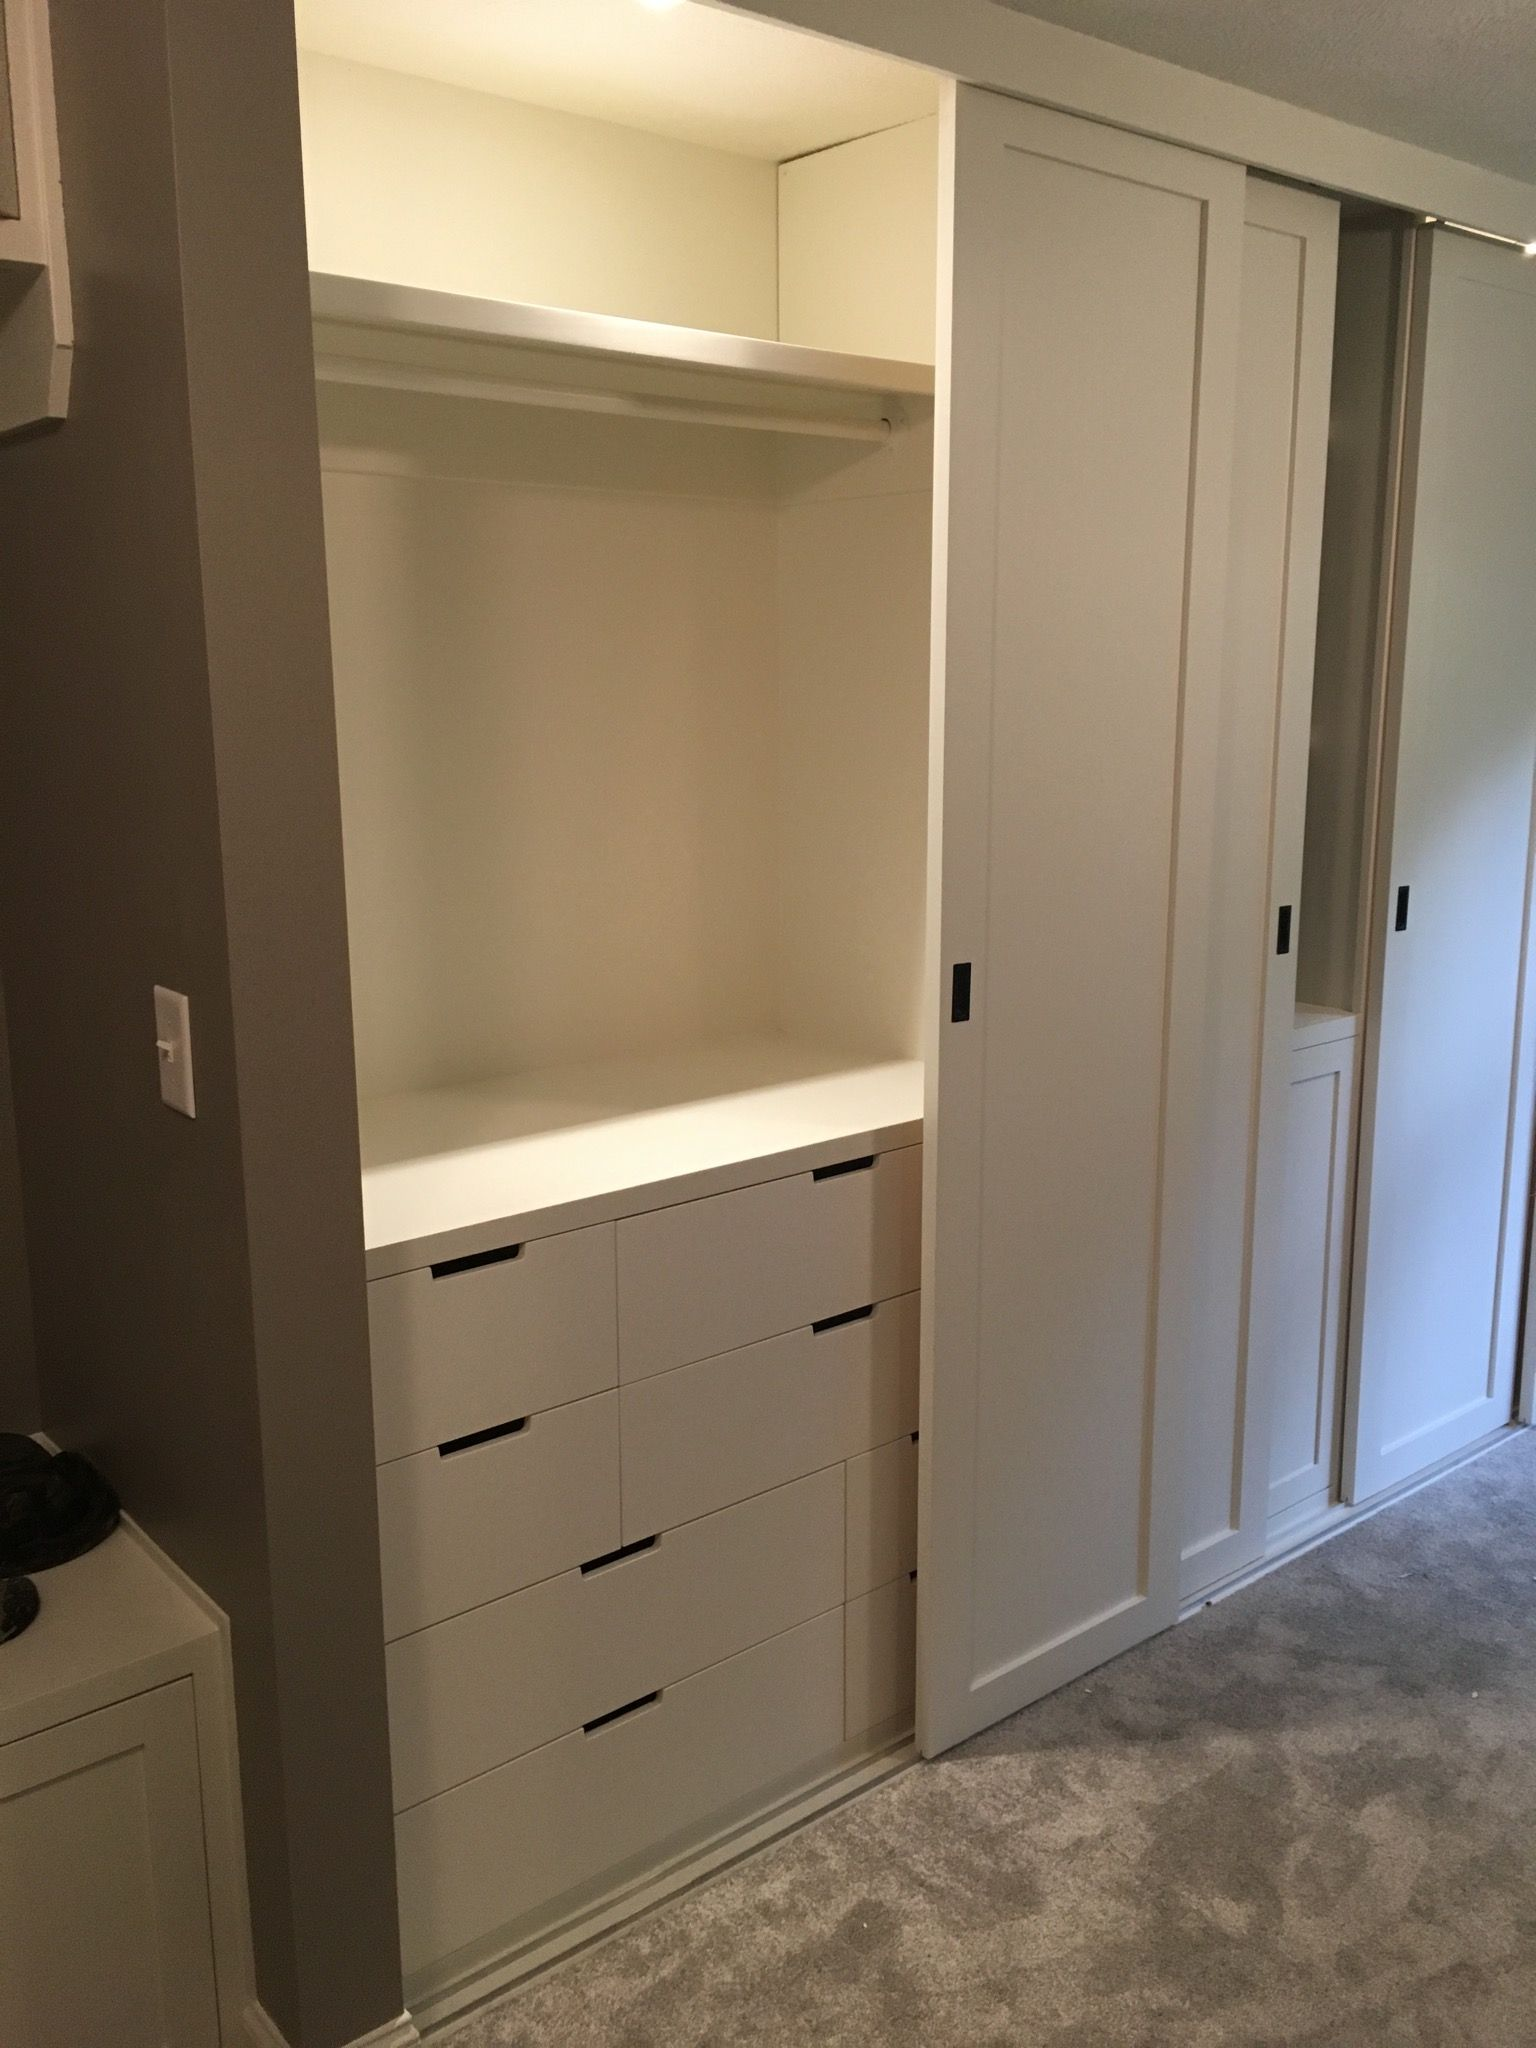 Ikea Nordli Dressers Within Built In Closet Sliding Ceiling Mounted Doors Build A Closet Ikea Closet Design Closet Built Ins